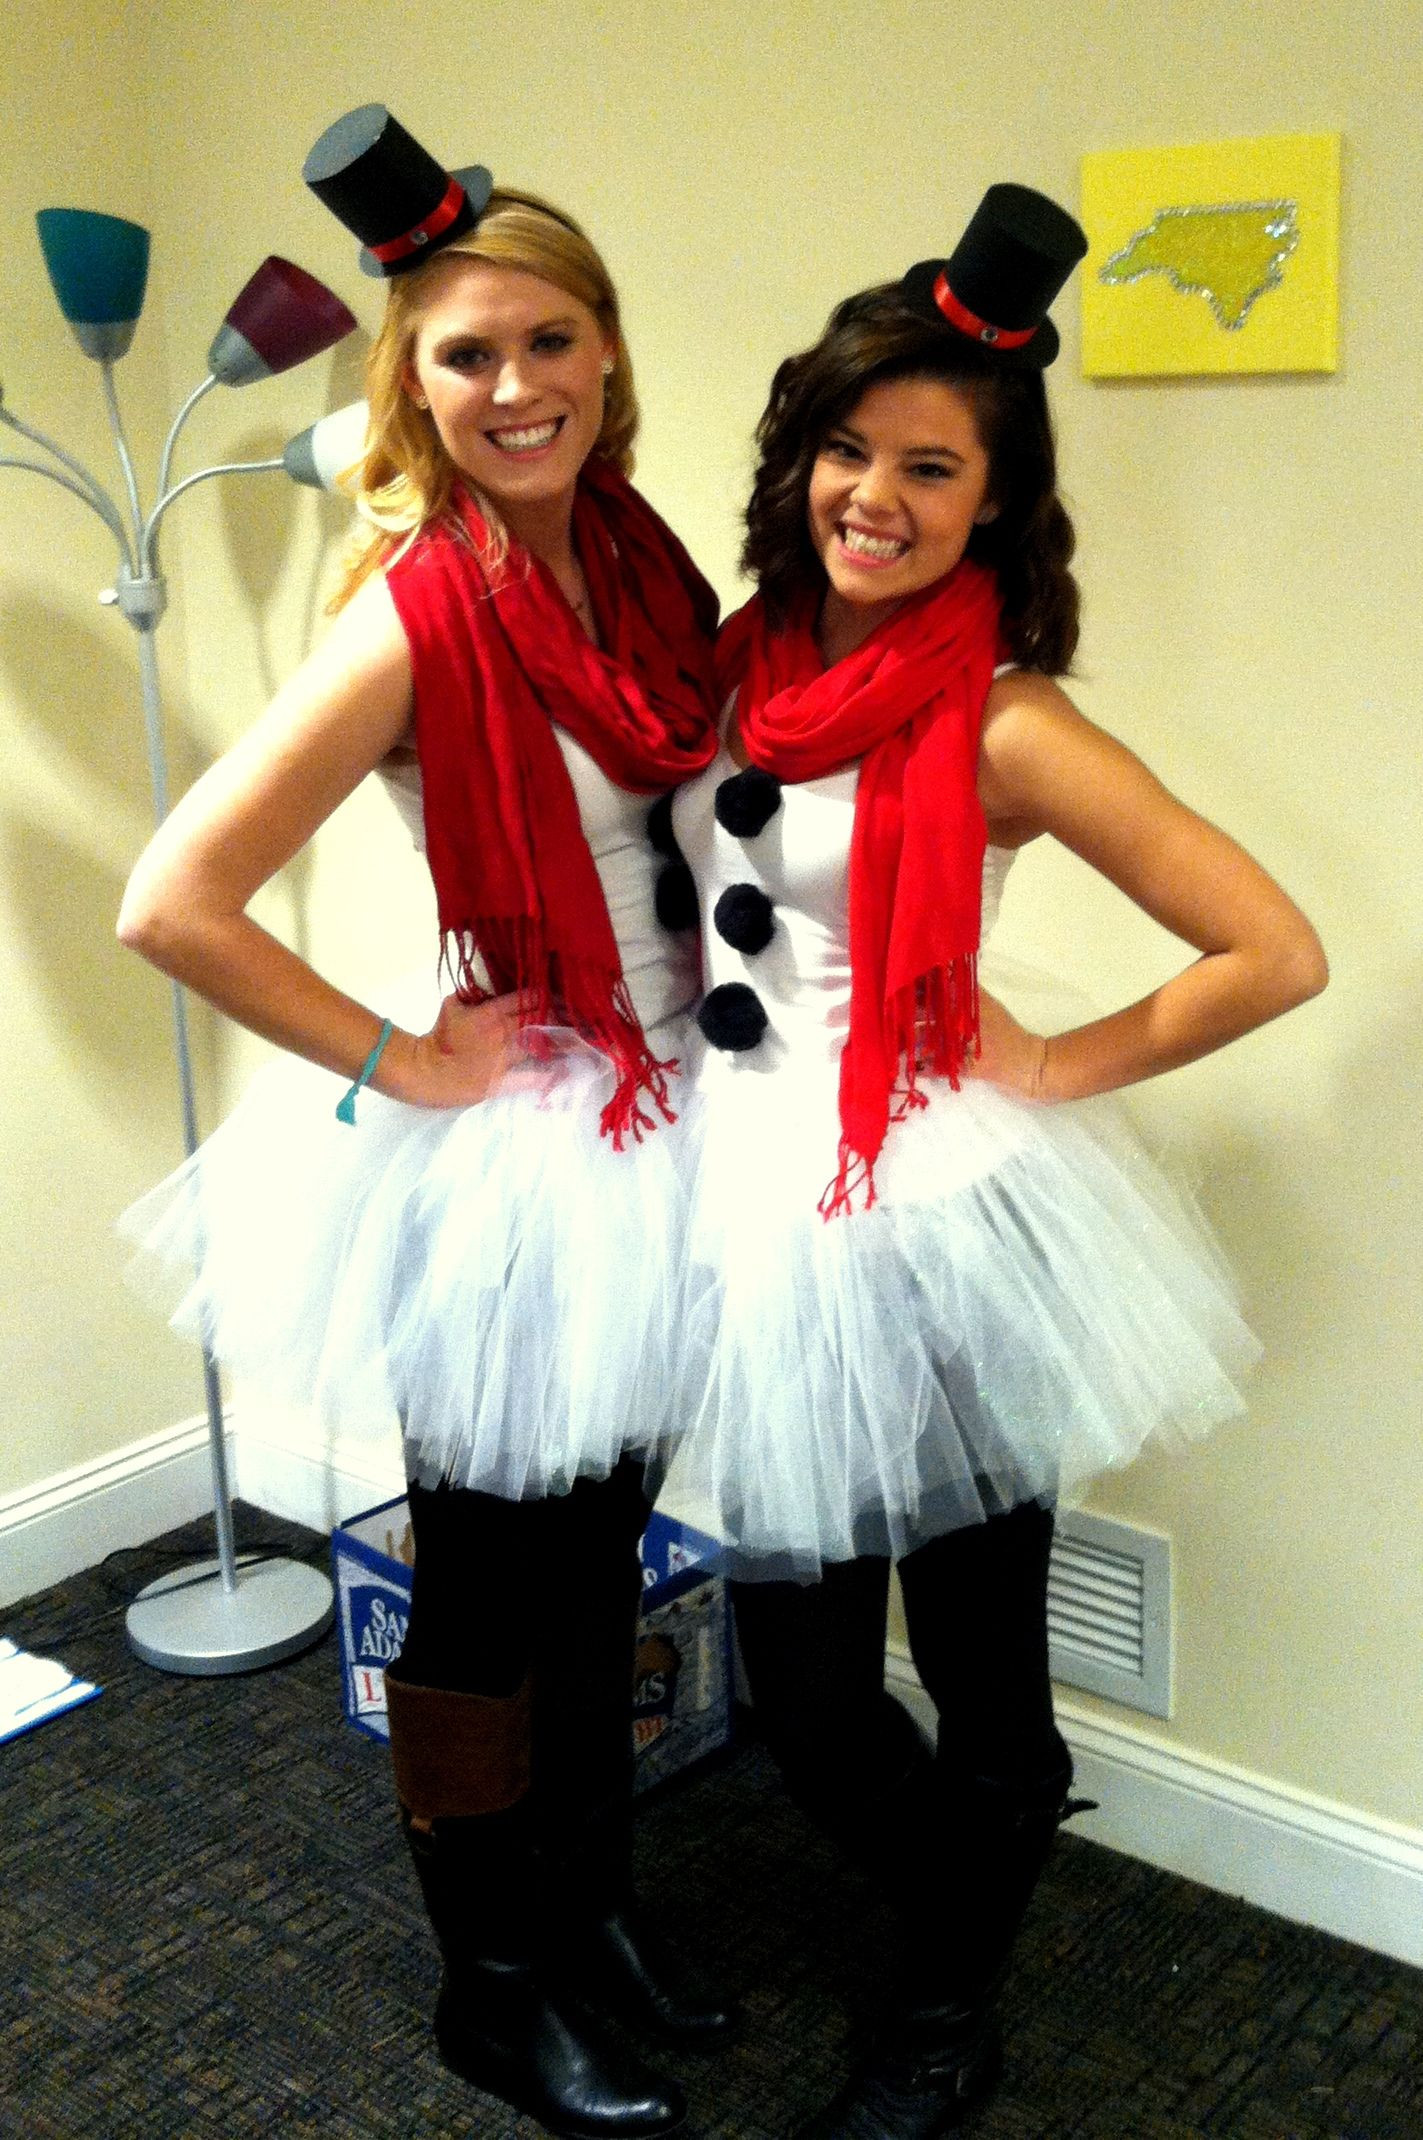 Best ideas about DIY Snowman Costumes . Save or Pin Do you wanna build a snowman DIY snowman costume Now.